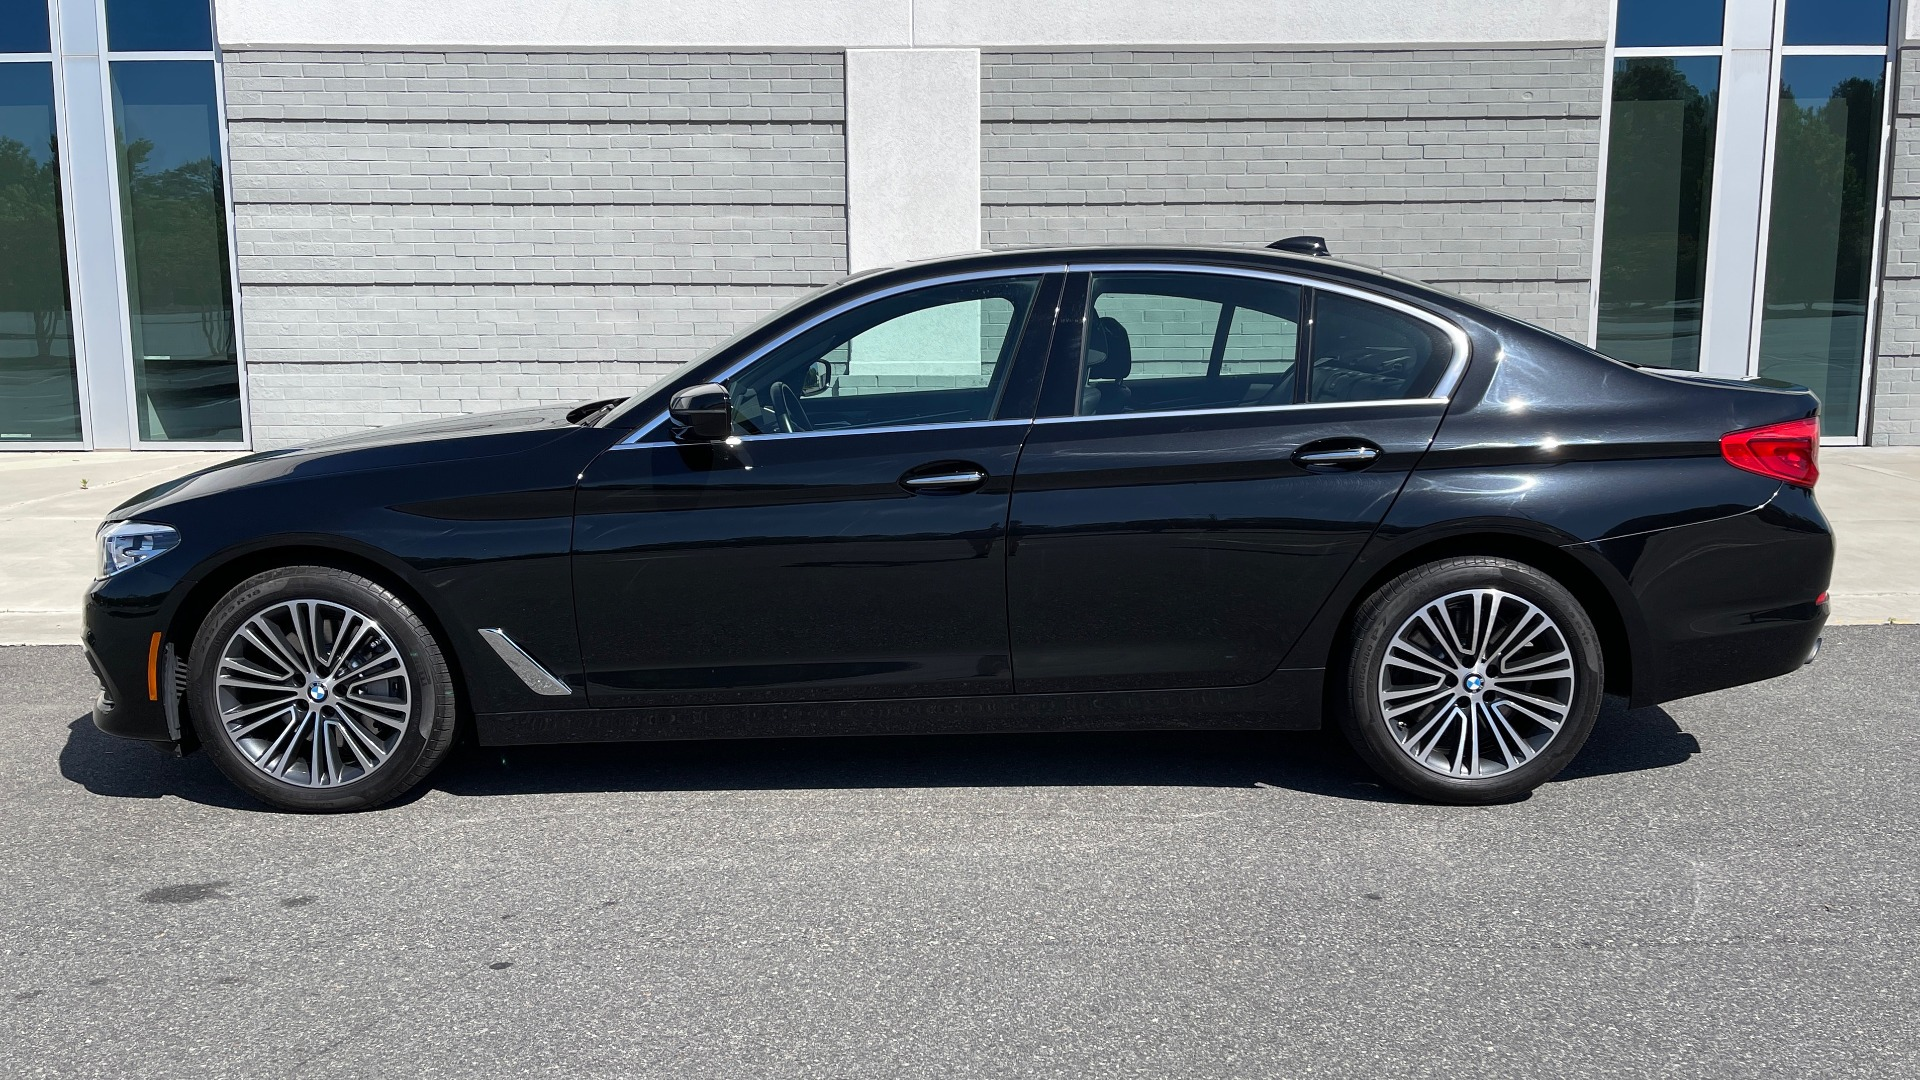 Used 2018 BMW 5 SERIES 540I XDRIVE PREMIUM / NAV / PARK ASST / WIRELESS CHARGING H/K SND for sale $38,395 at Formula Imports in Charlotte NC 28227 5